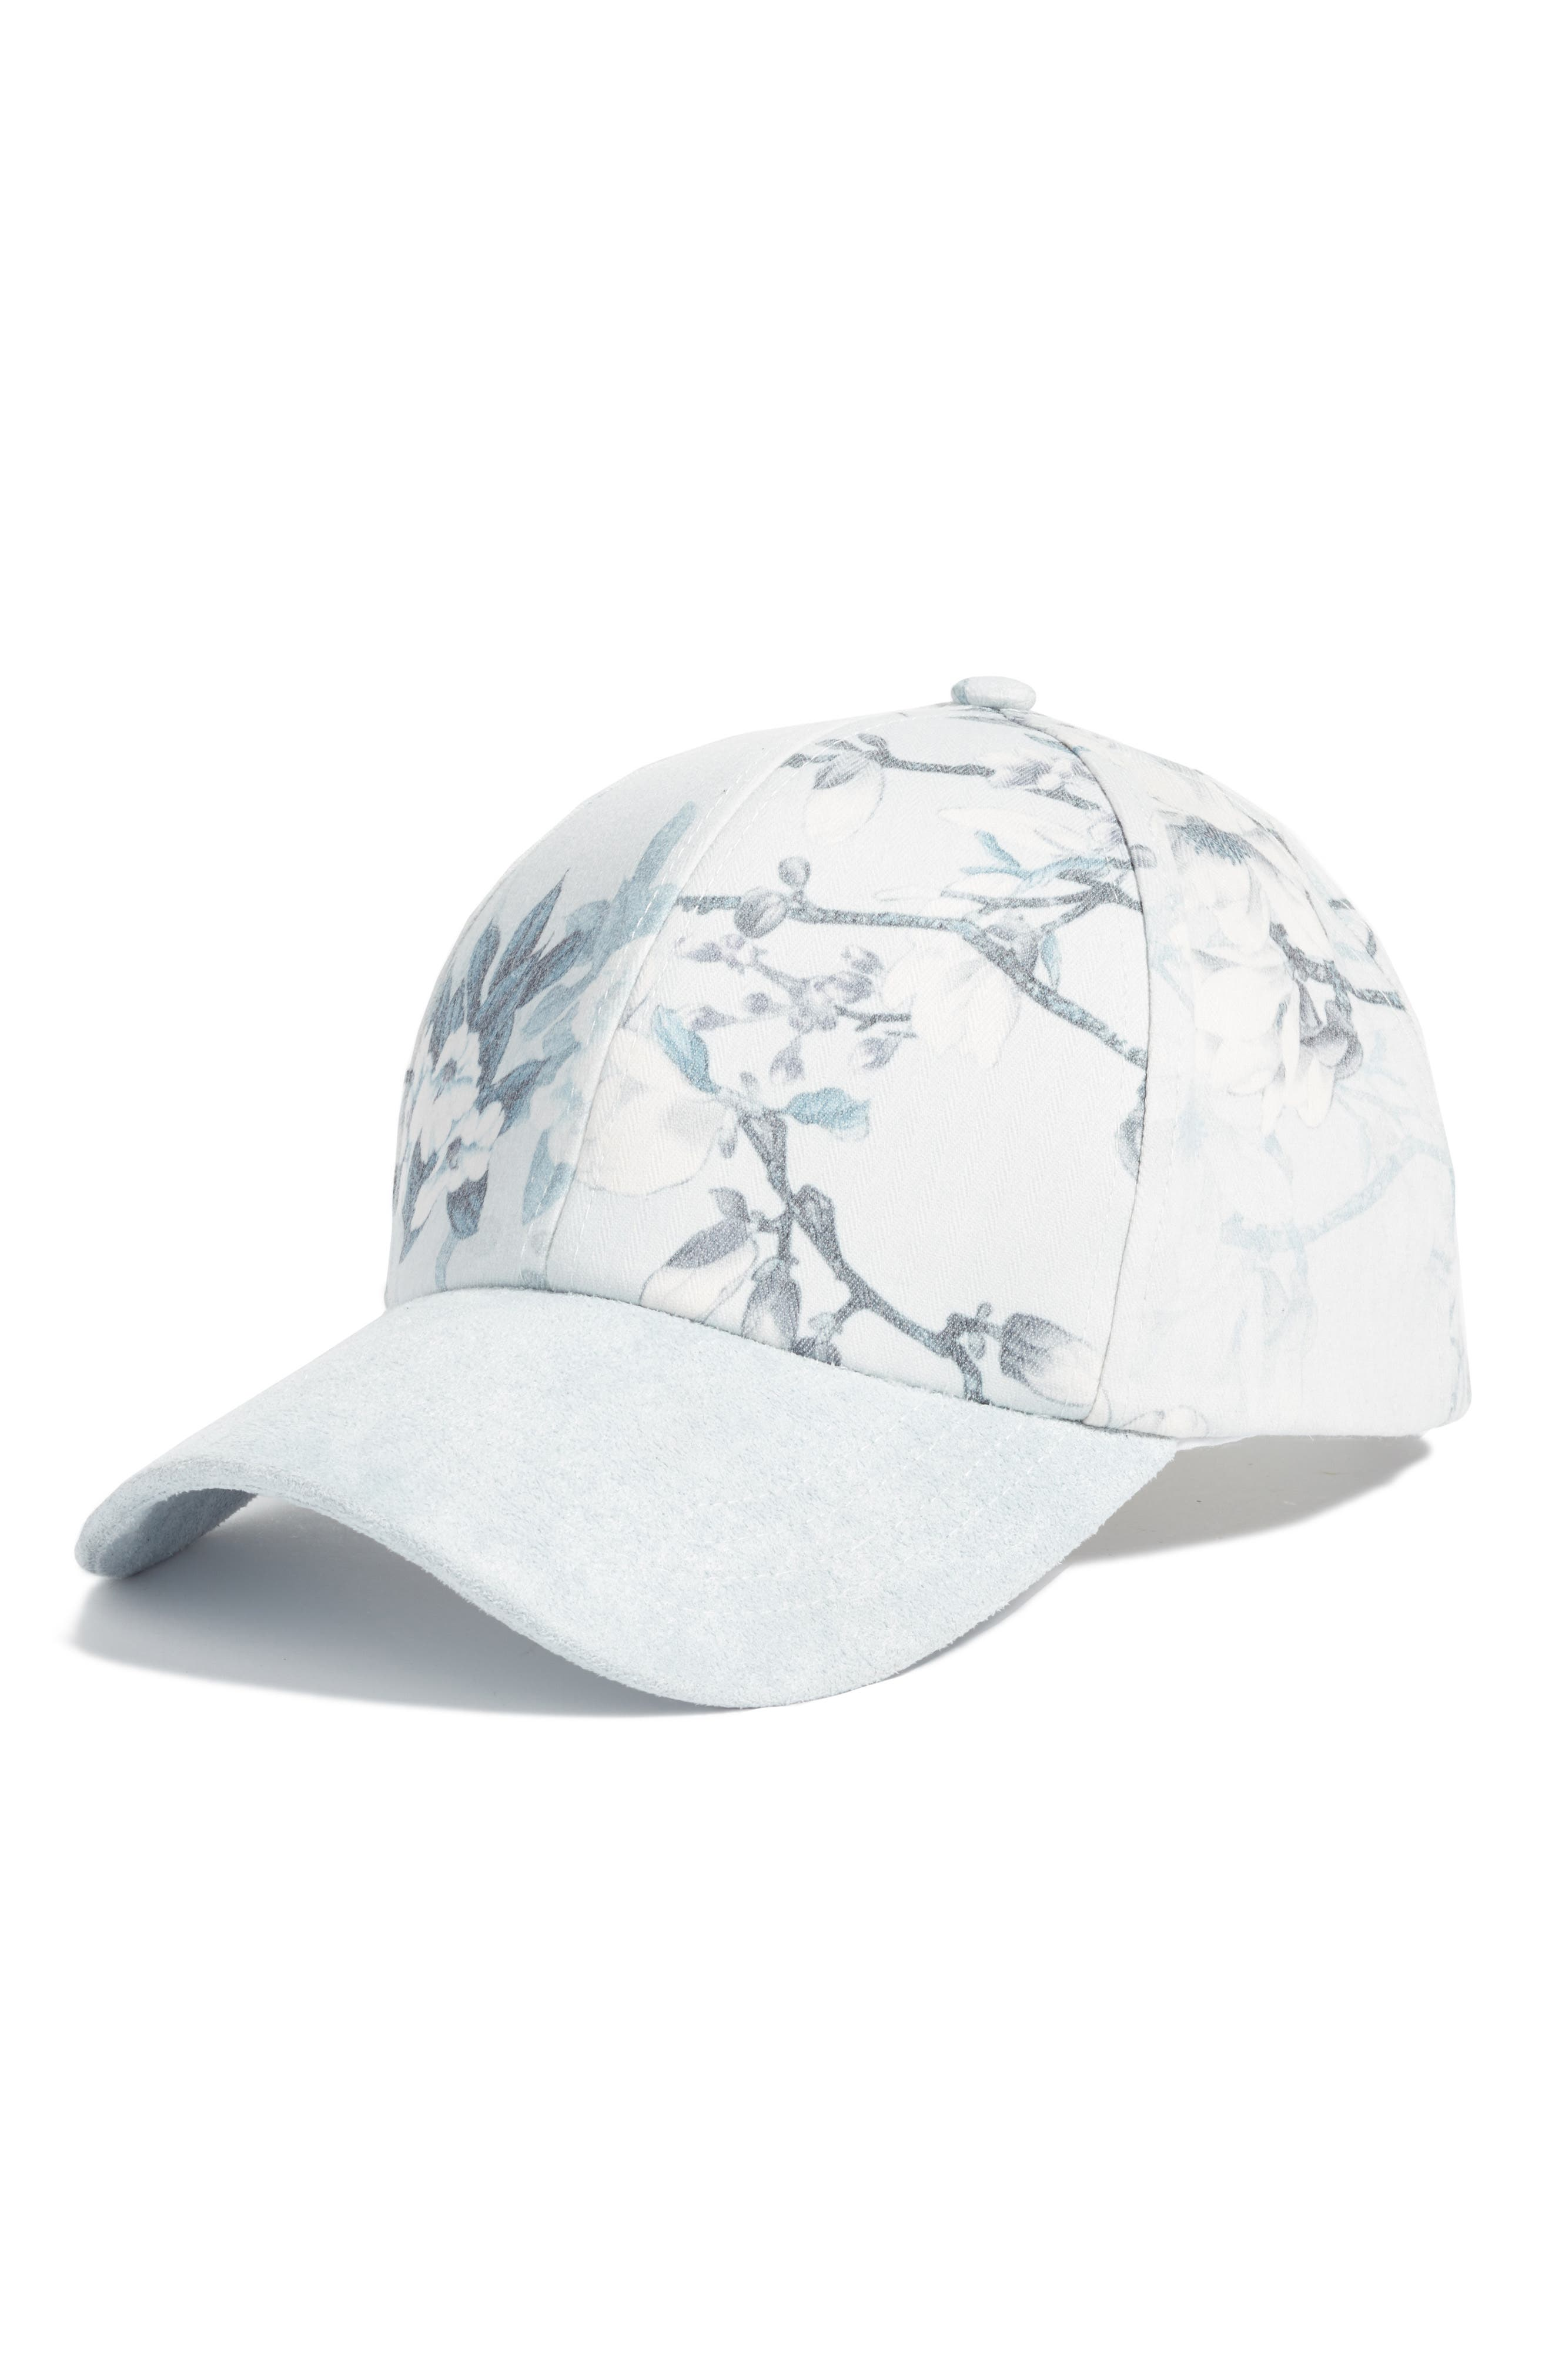 Vince Camuto Orchid Baseball Cap